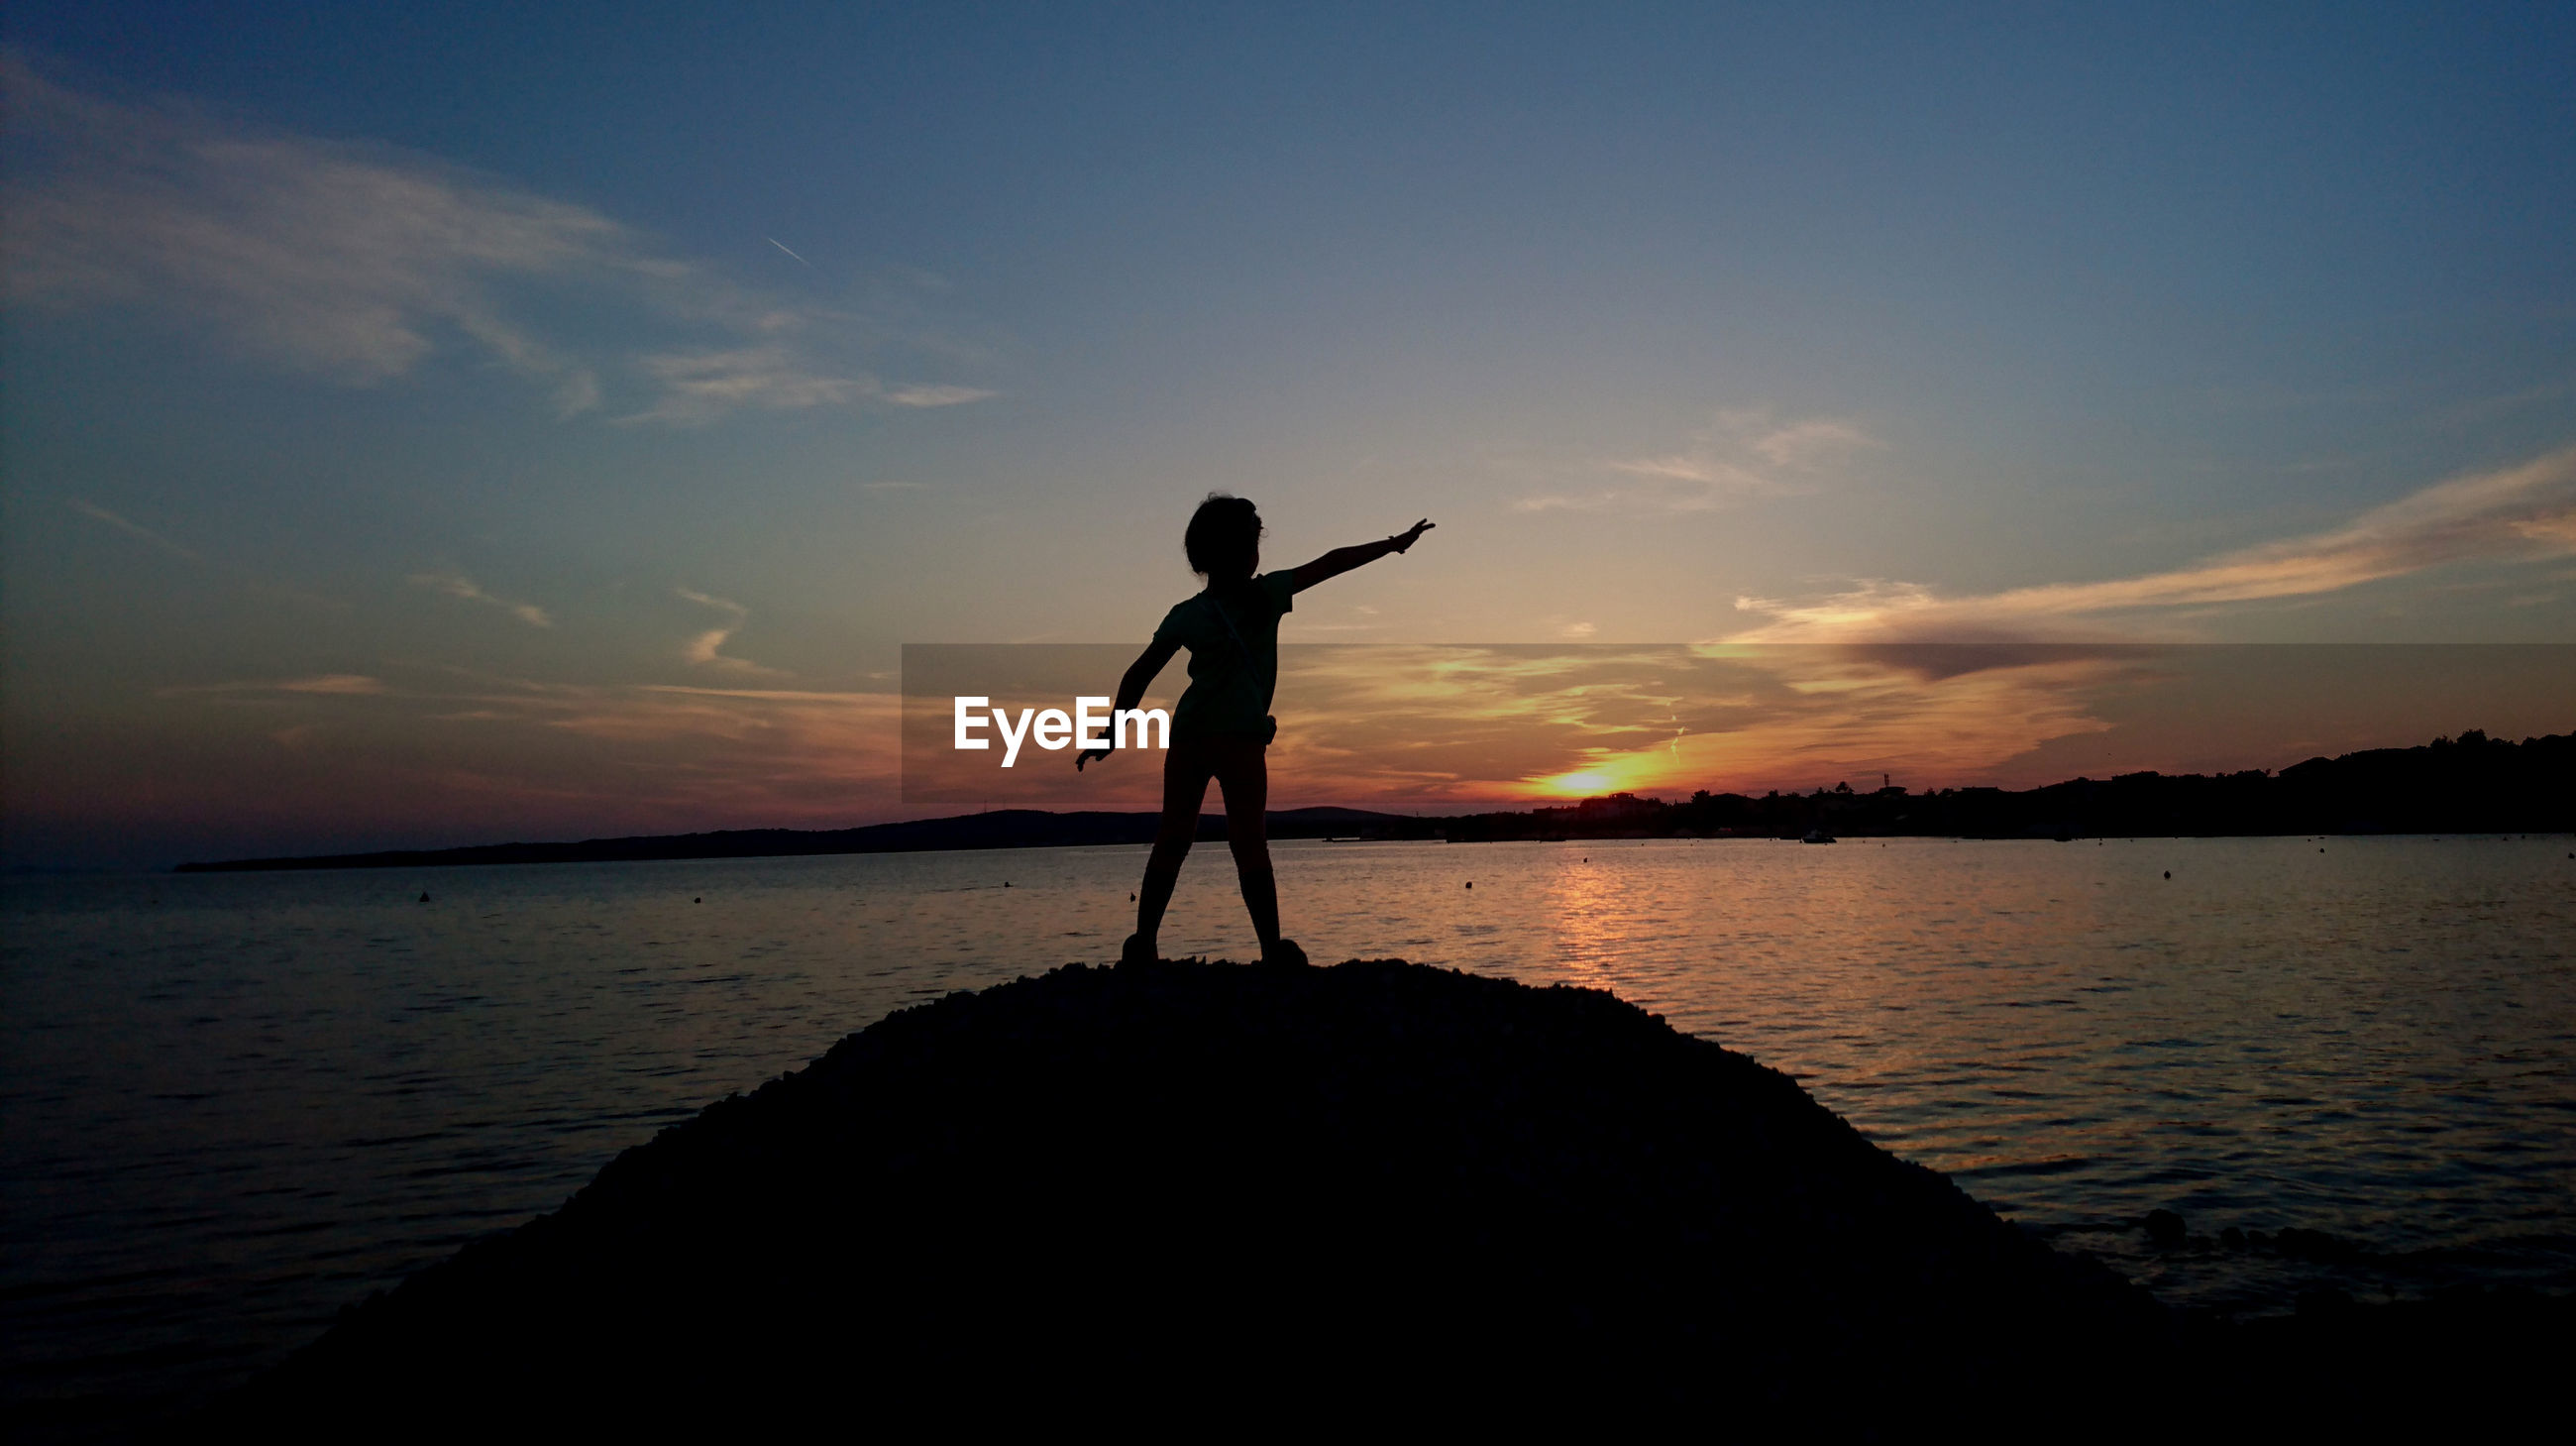 SILHOUETTE BOY STANDING ON BEACH AGAINST SKY AT SUNSET